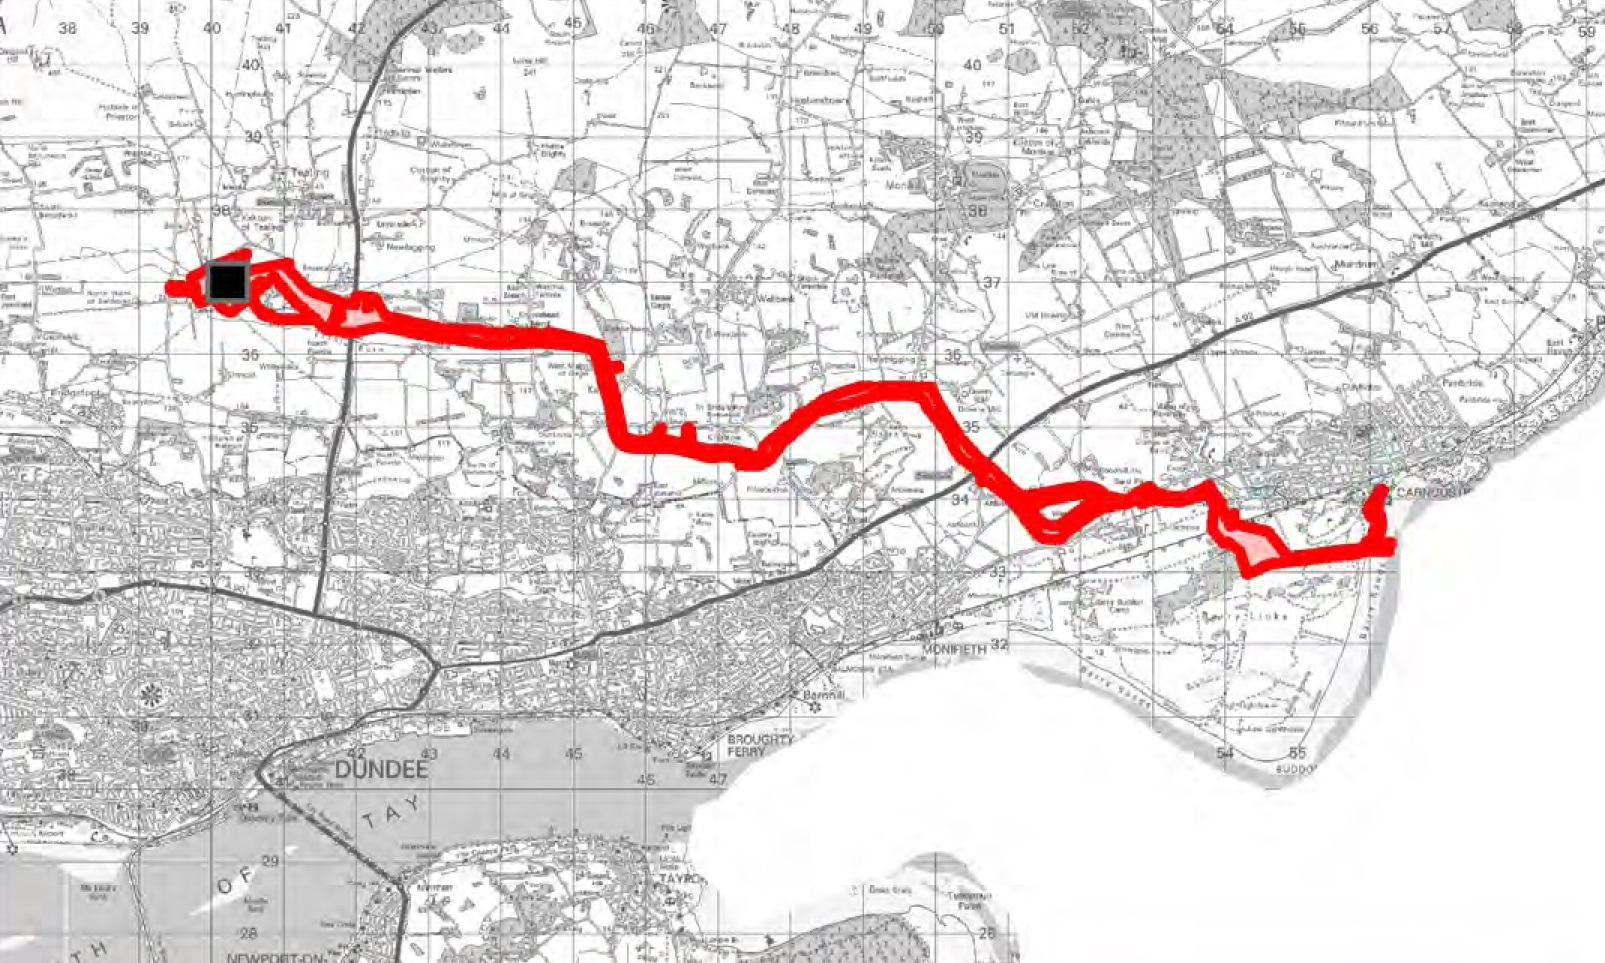 Cabling will run from Carnoustie to a Tealing sub-station.